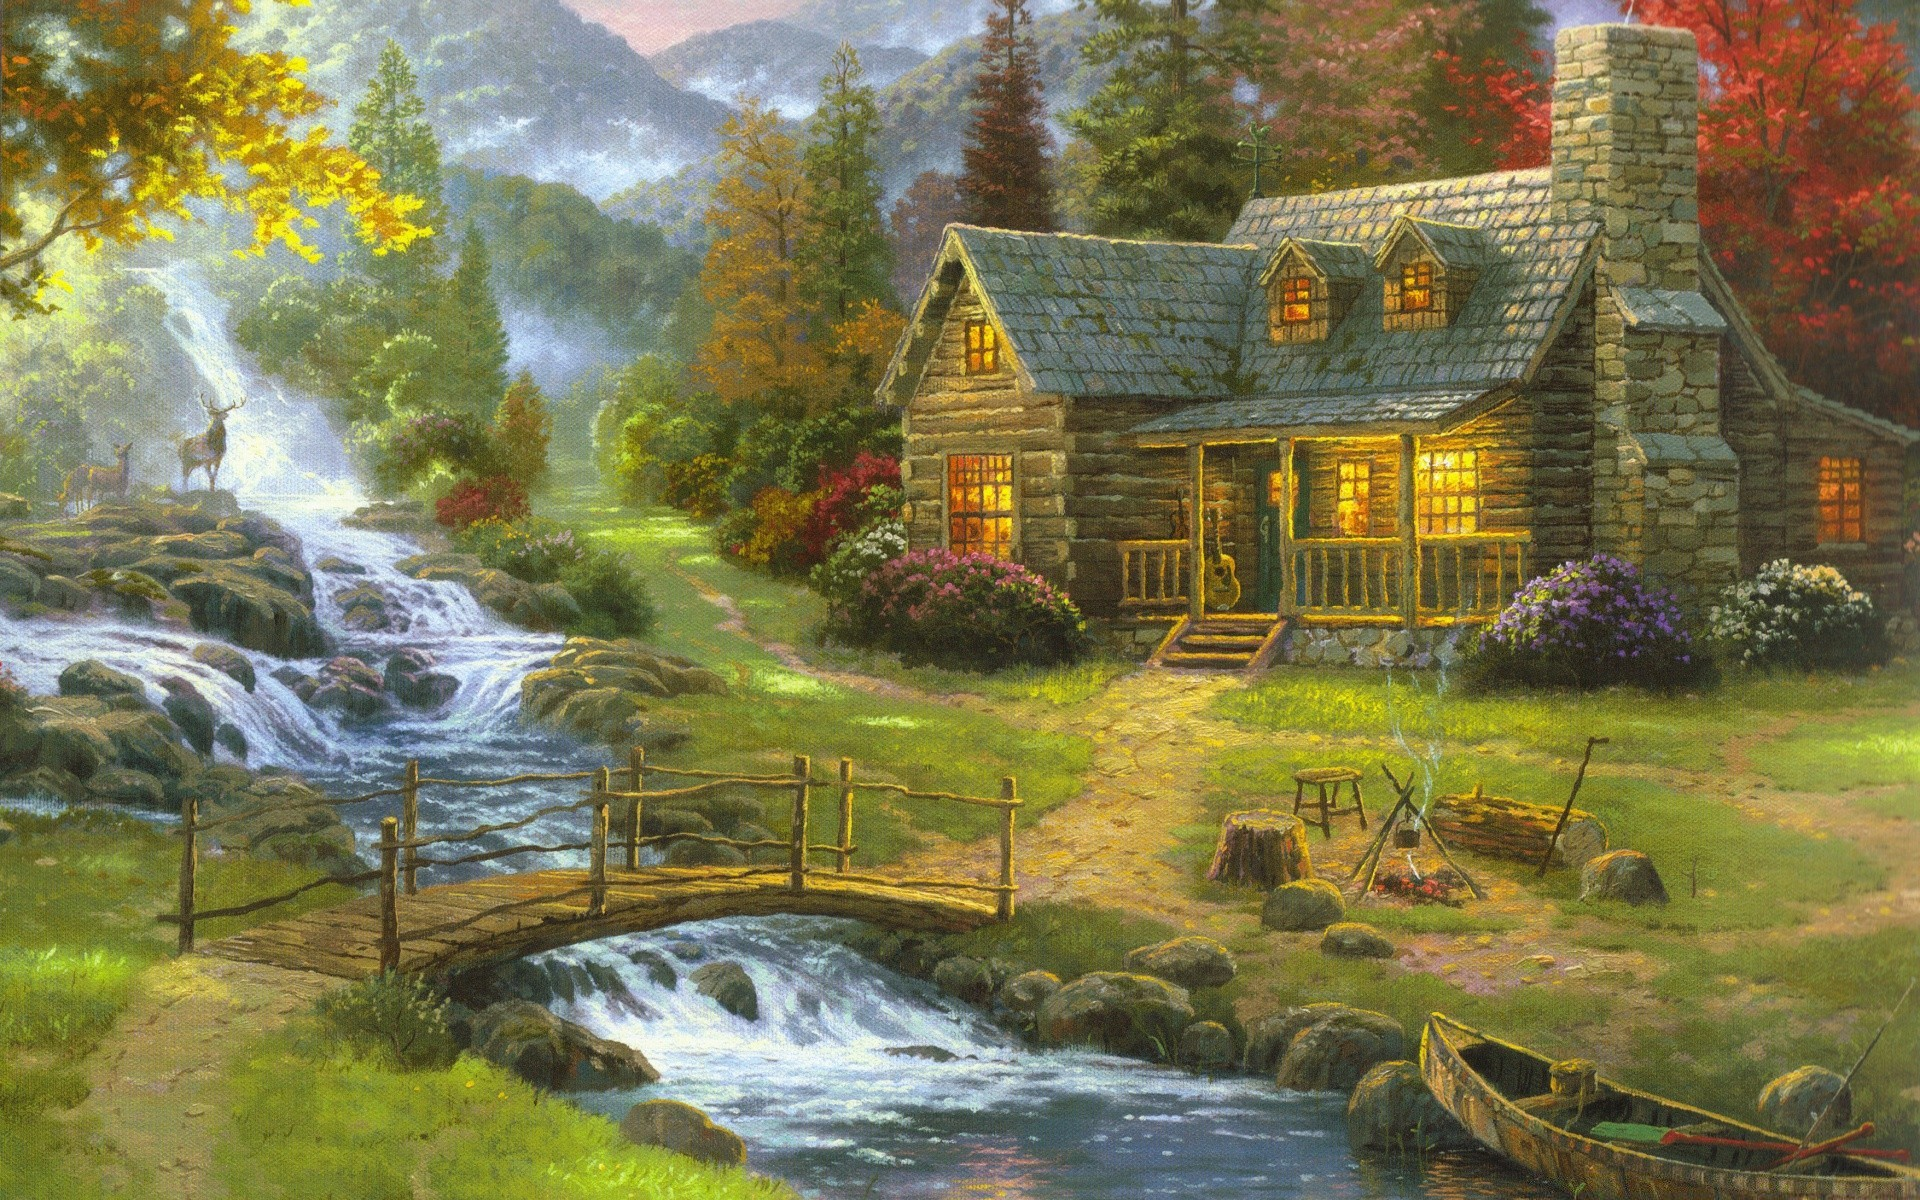 drawings water fall nature river wood tree outdoors travel landscape summer house scenic leaf stream lake